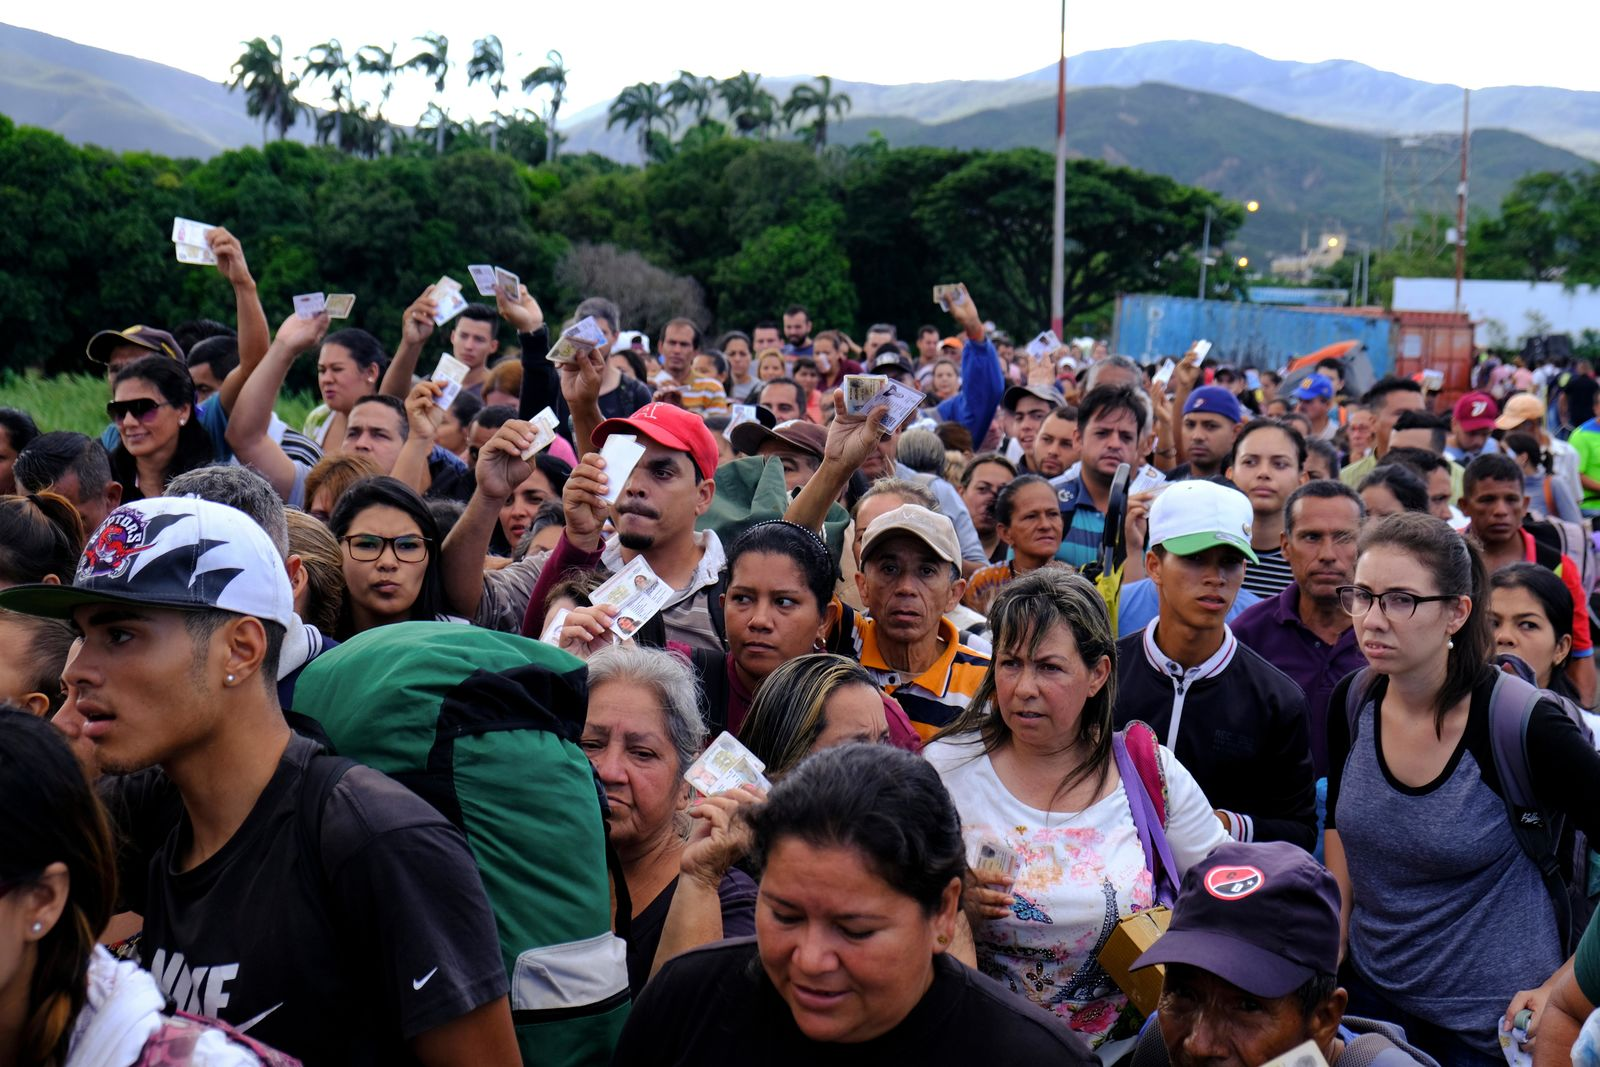 Venezuelans showing their IDs line up to cross the Simon Bolivar international bridge into Cucuta, Colombia, Saturday, June 8, 2019. Venezuela's President Nicolas Maduro ordered the partial re-opening of the border that has been closed since February when he stationed containers on the bridge to block an opposition plan to deliver humanitarian aid into the country. (AP Photo/Ferley Ospina)